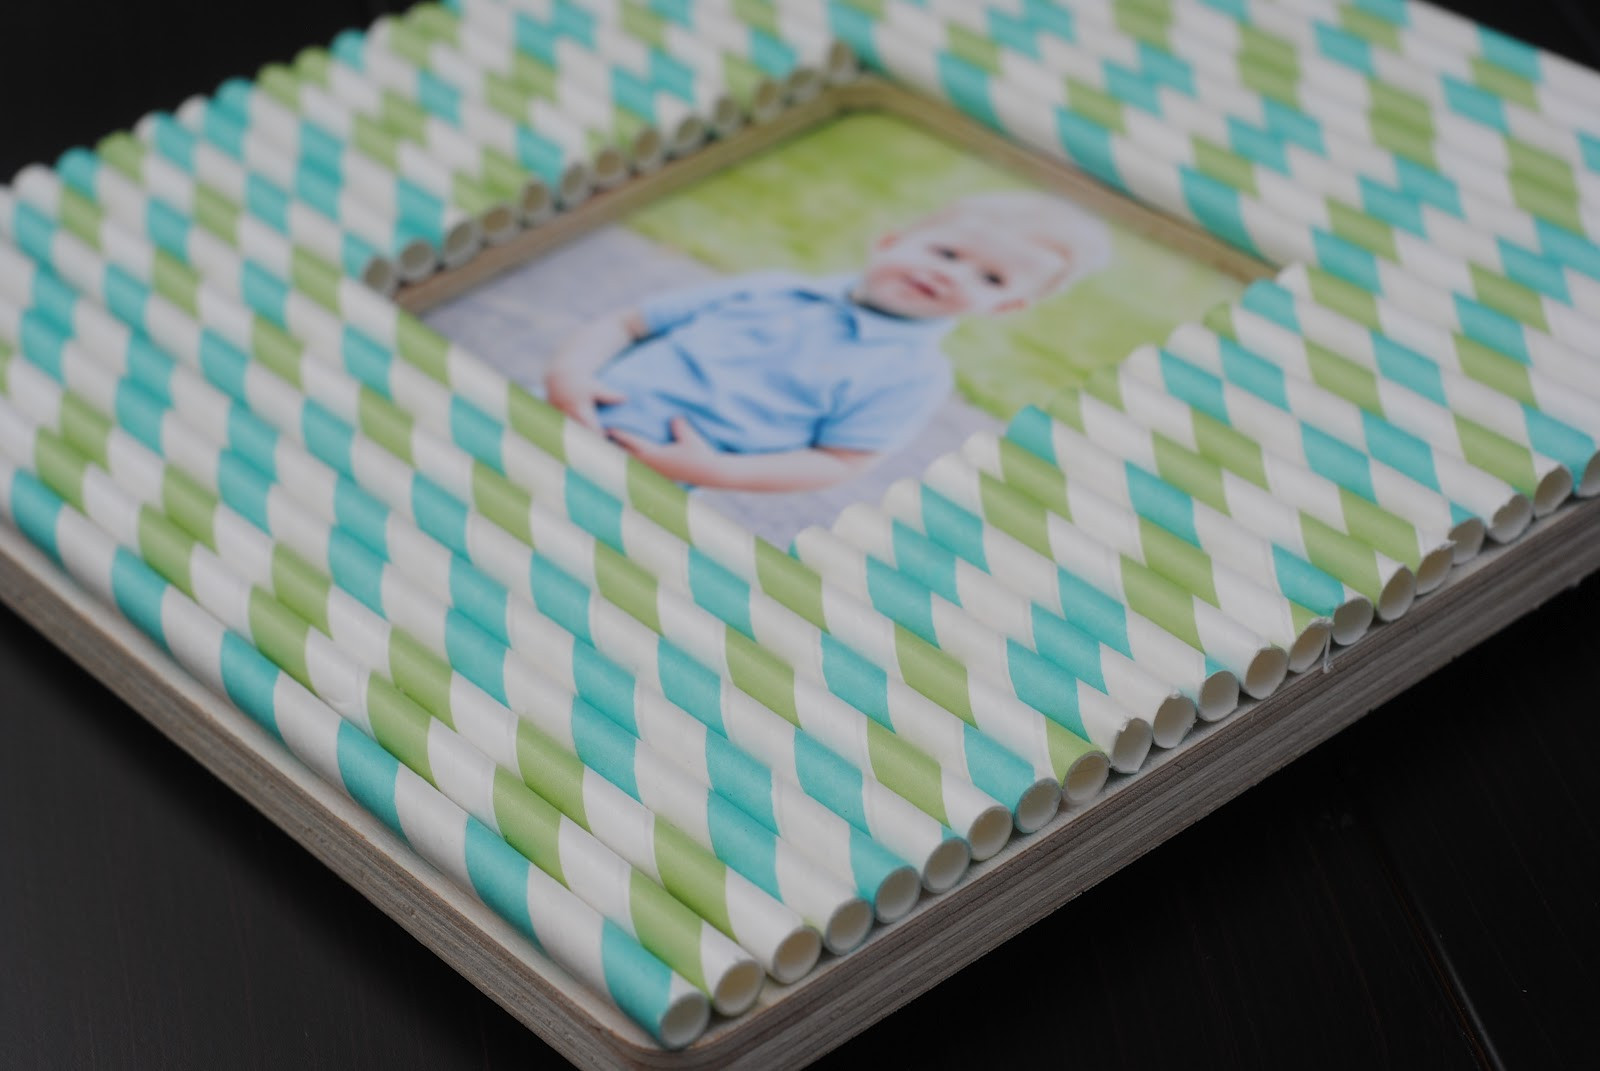 Unique 5 Ways to Decorate A Craft Frame Kids Craft Ideas Picture Frame Crafts for Kids Of Adorable 48 Models Picture Frame Crafts for Kids